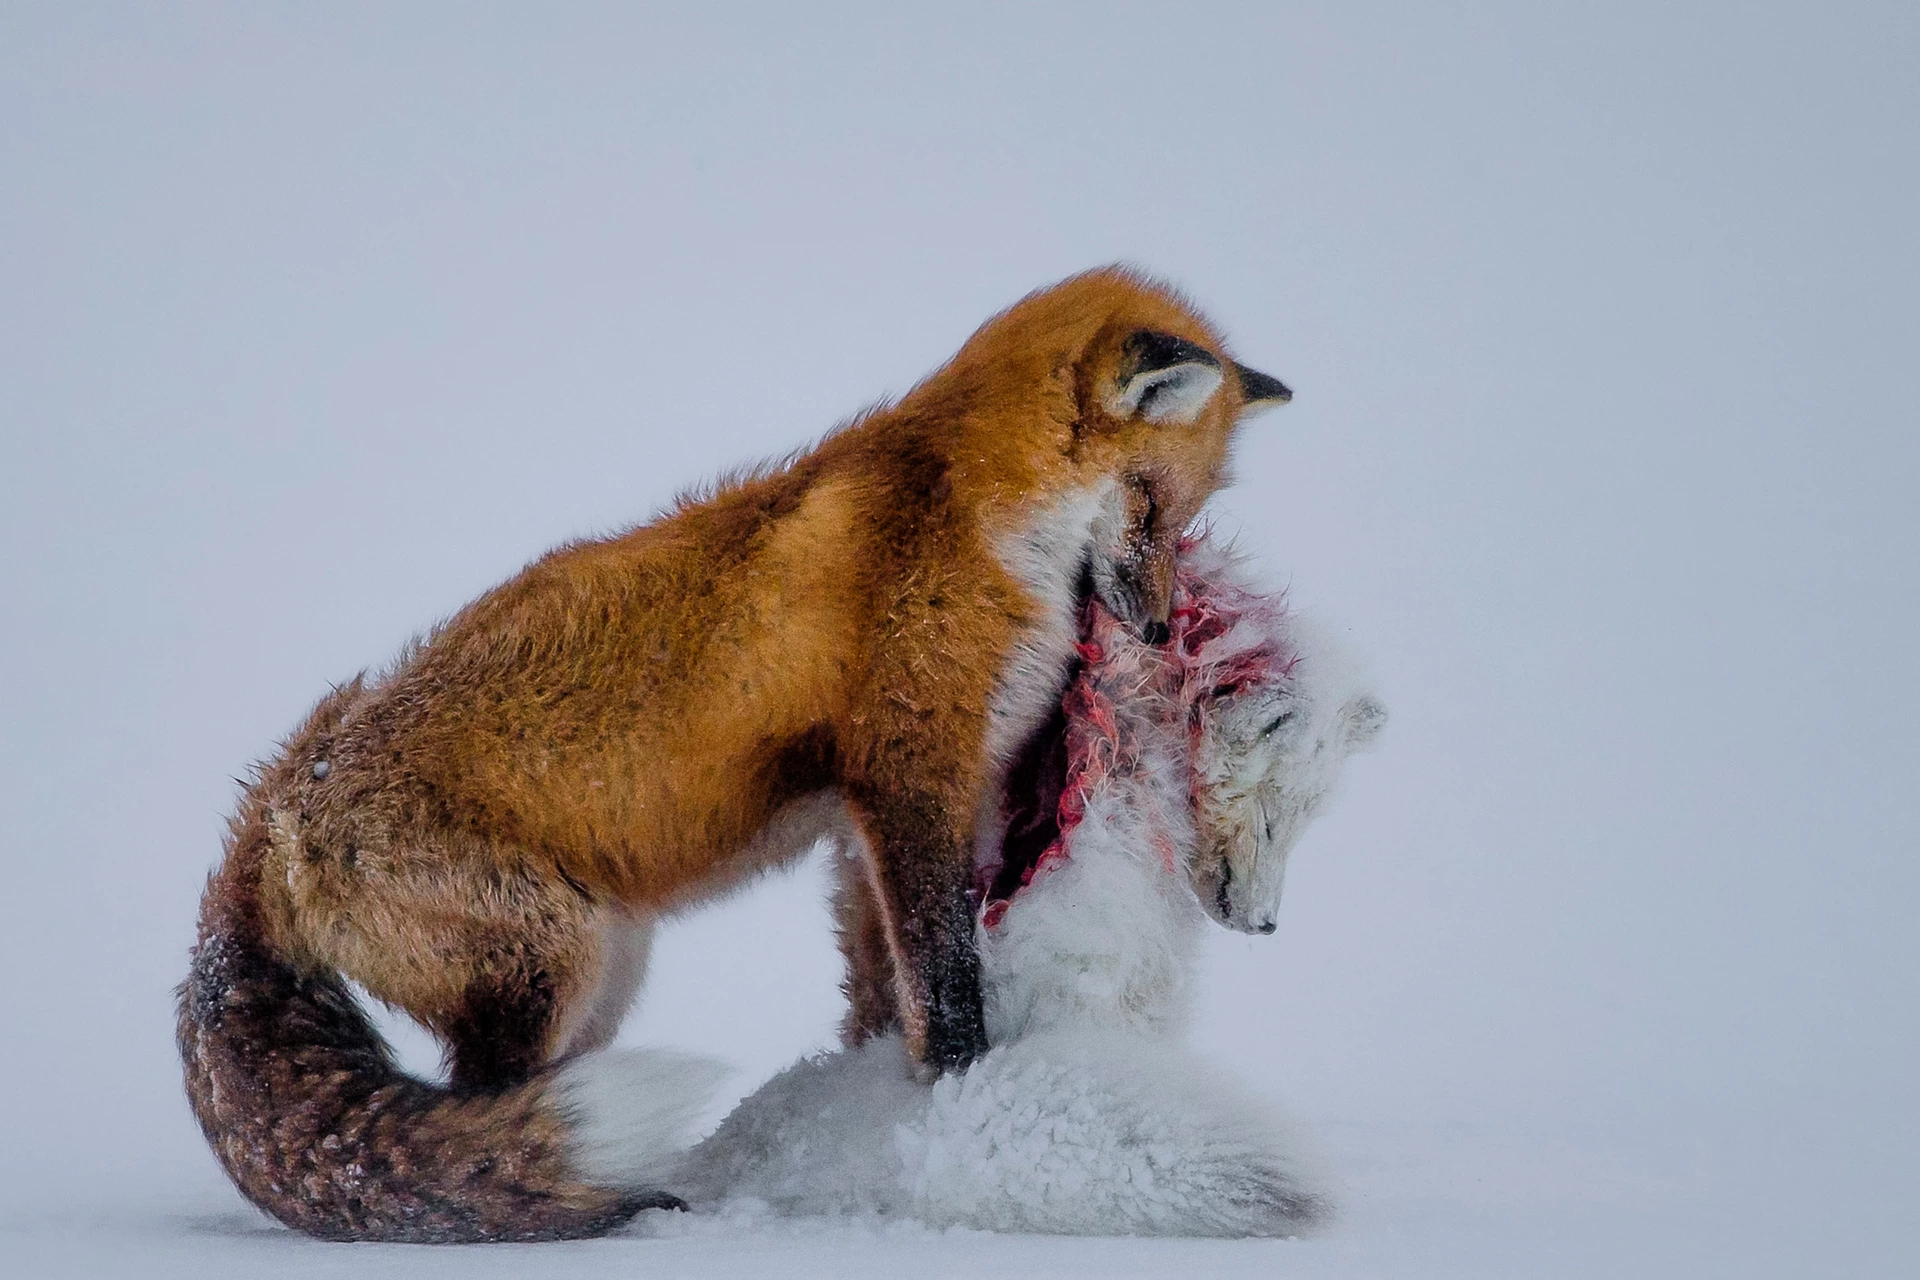 These Are The Best Wildlife Photographs Of 2015